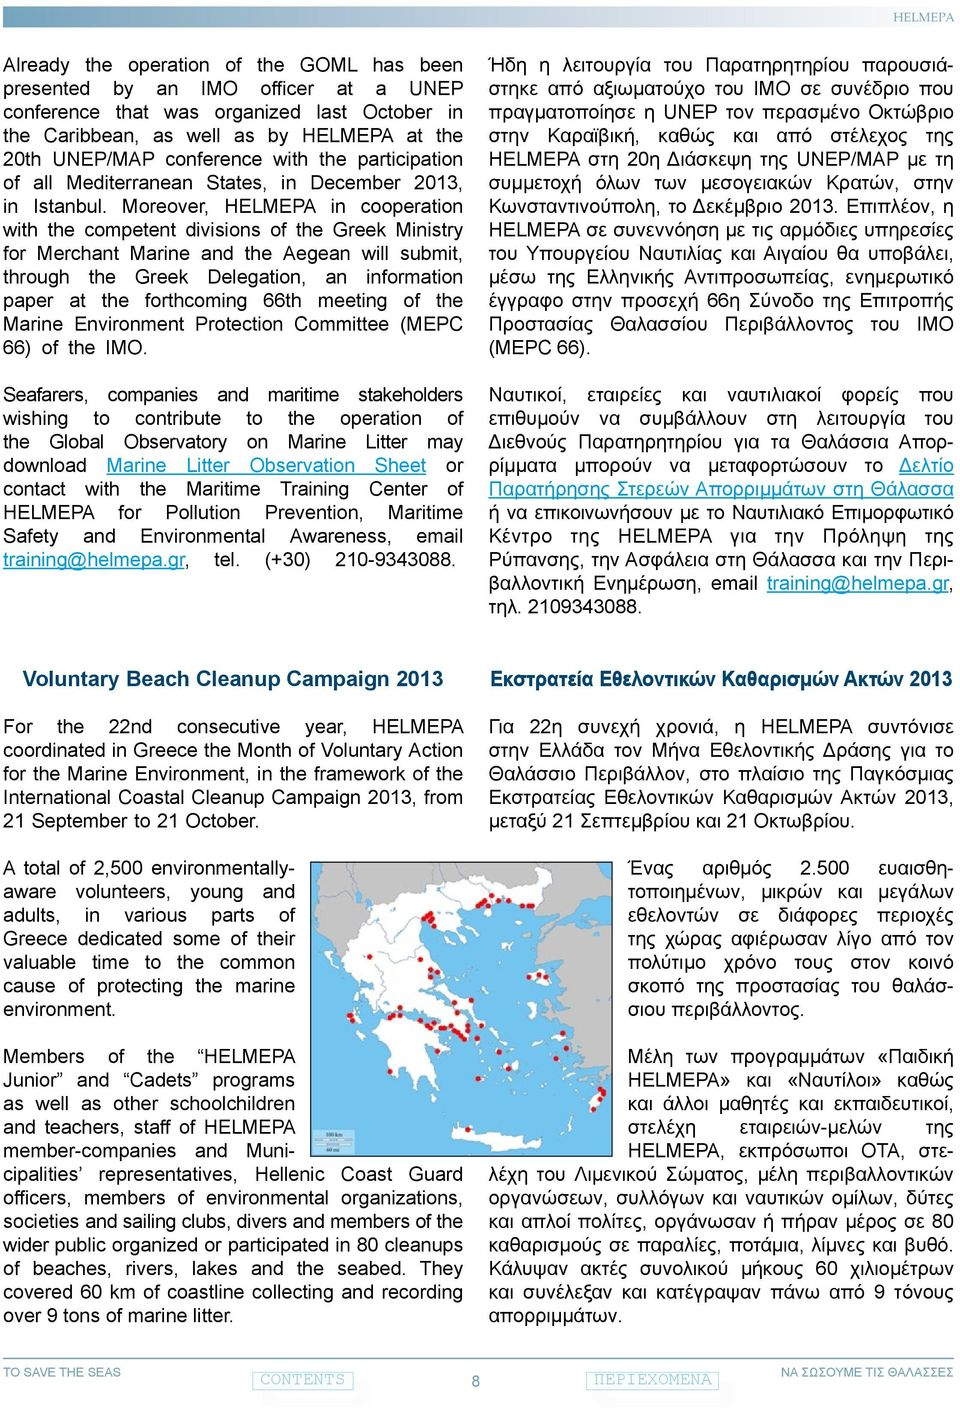 Moreover, HELMEPA in cooperation with the competent divisions of the Greek Ministry for Merchant Marine and the Aegean will submit, through the Greek Delegation, an information paper at the